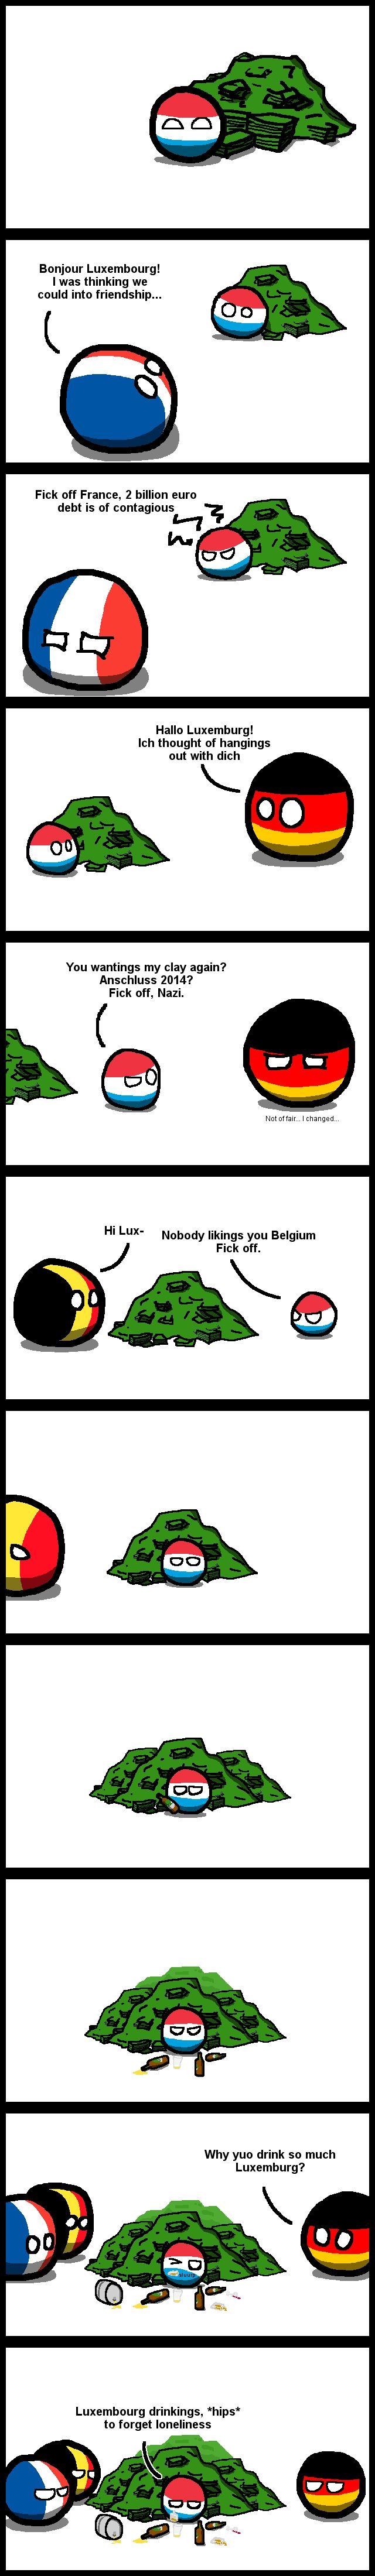 Luxembourg's little problem